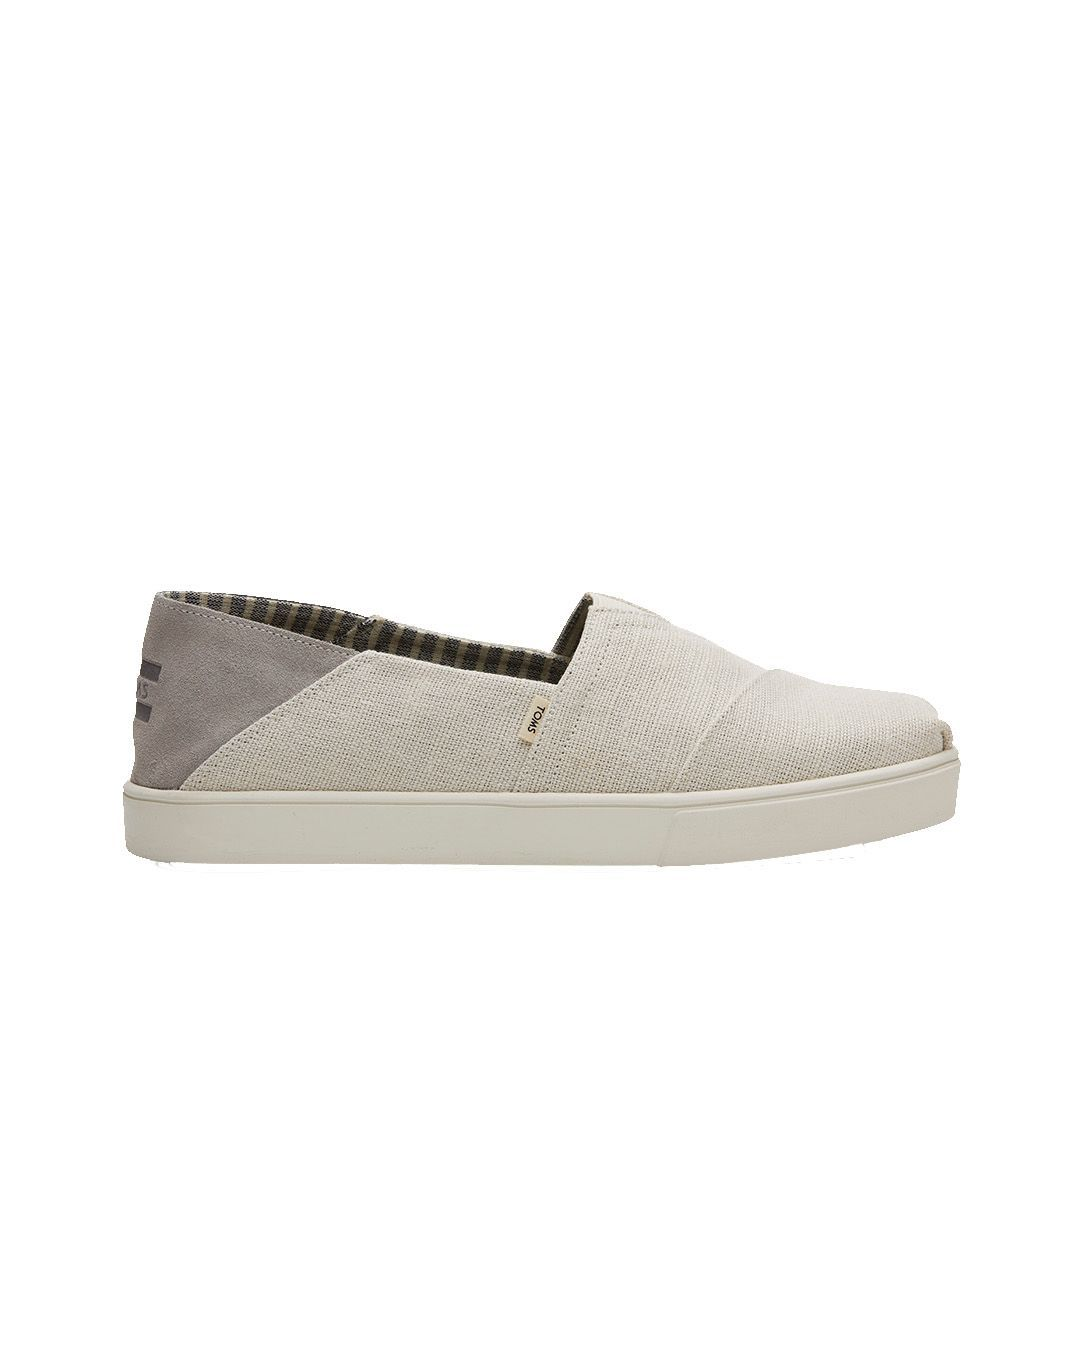 Toms Birch Heritage Canvas Shoes